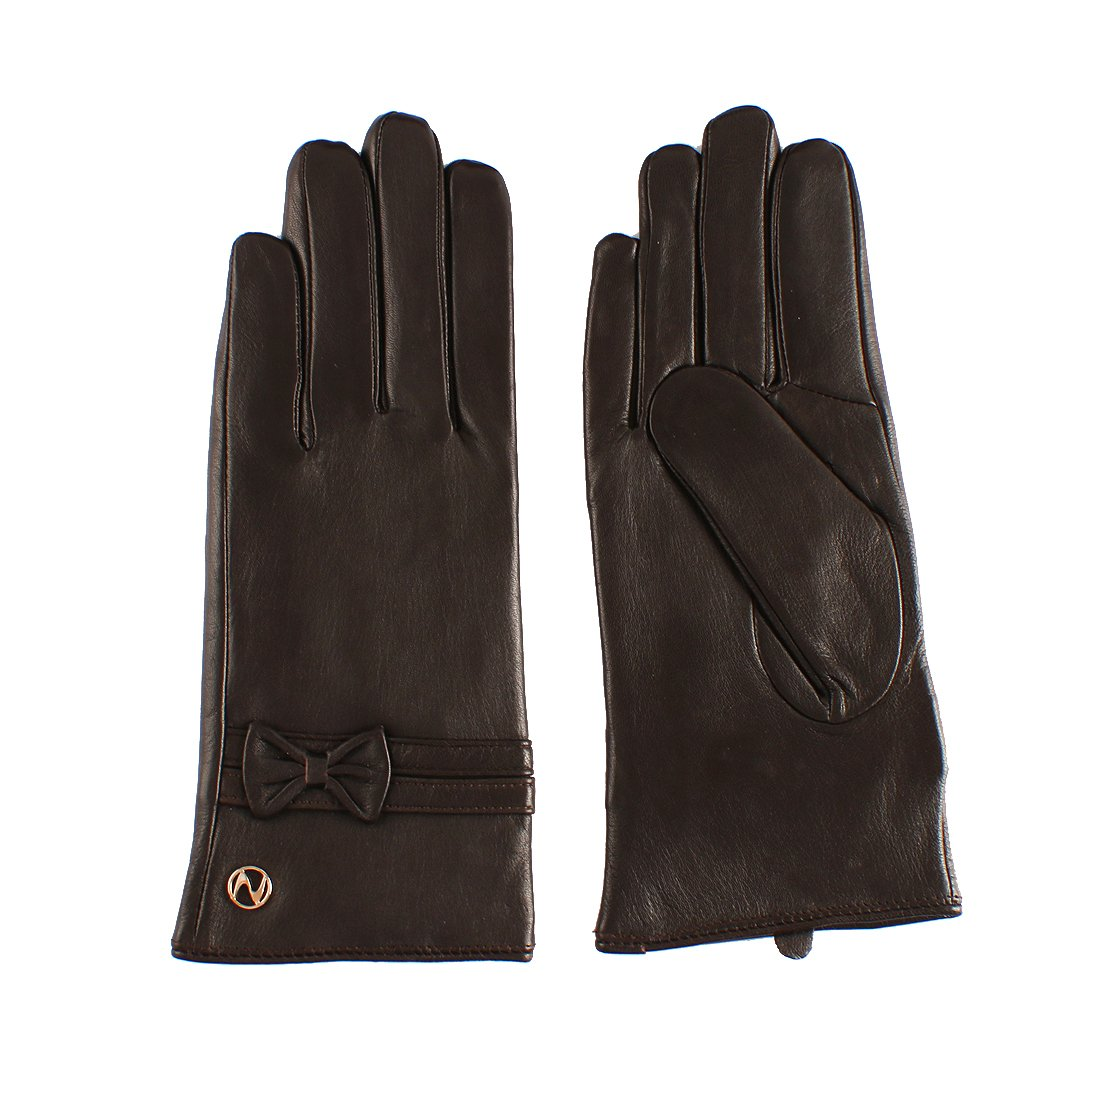 Nappaglo Women's Lambskin Leather Gloves Female Short Thickened Warm Gloves with Decorative Bownots (Touchscreen or Non-Touchscreen) (XXL (Palm Girth:8.5''-9''), Dark Brown (Touchscreen))